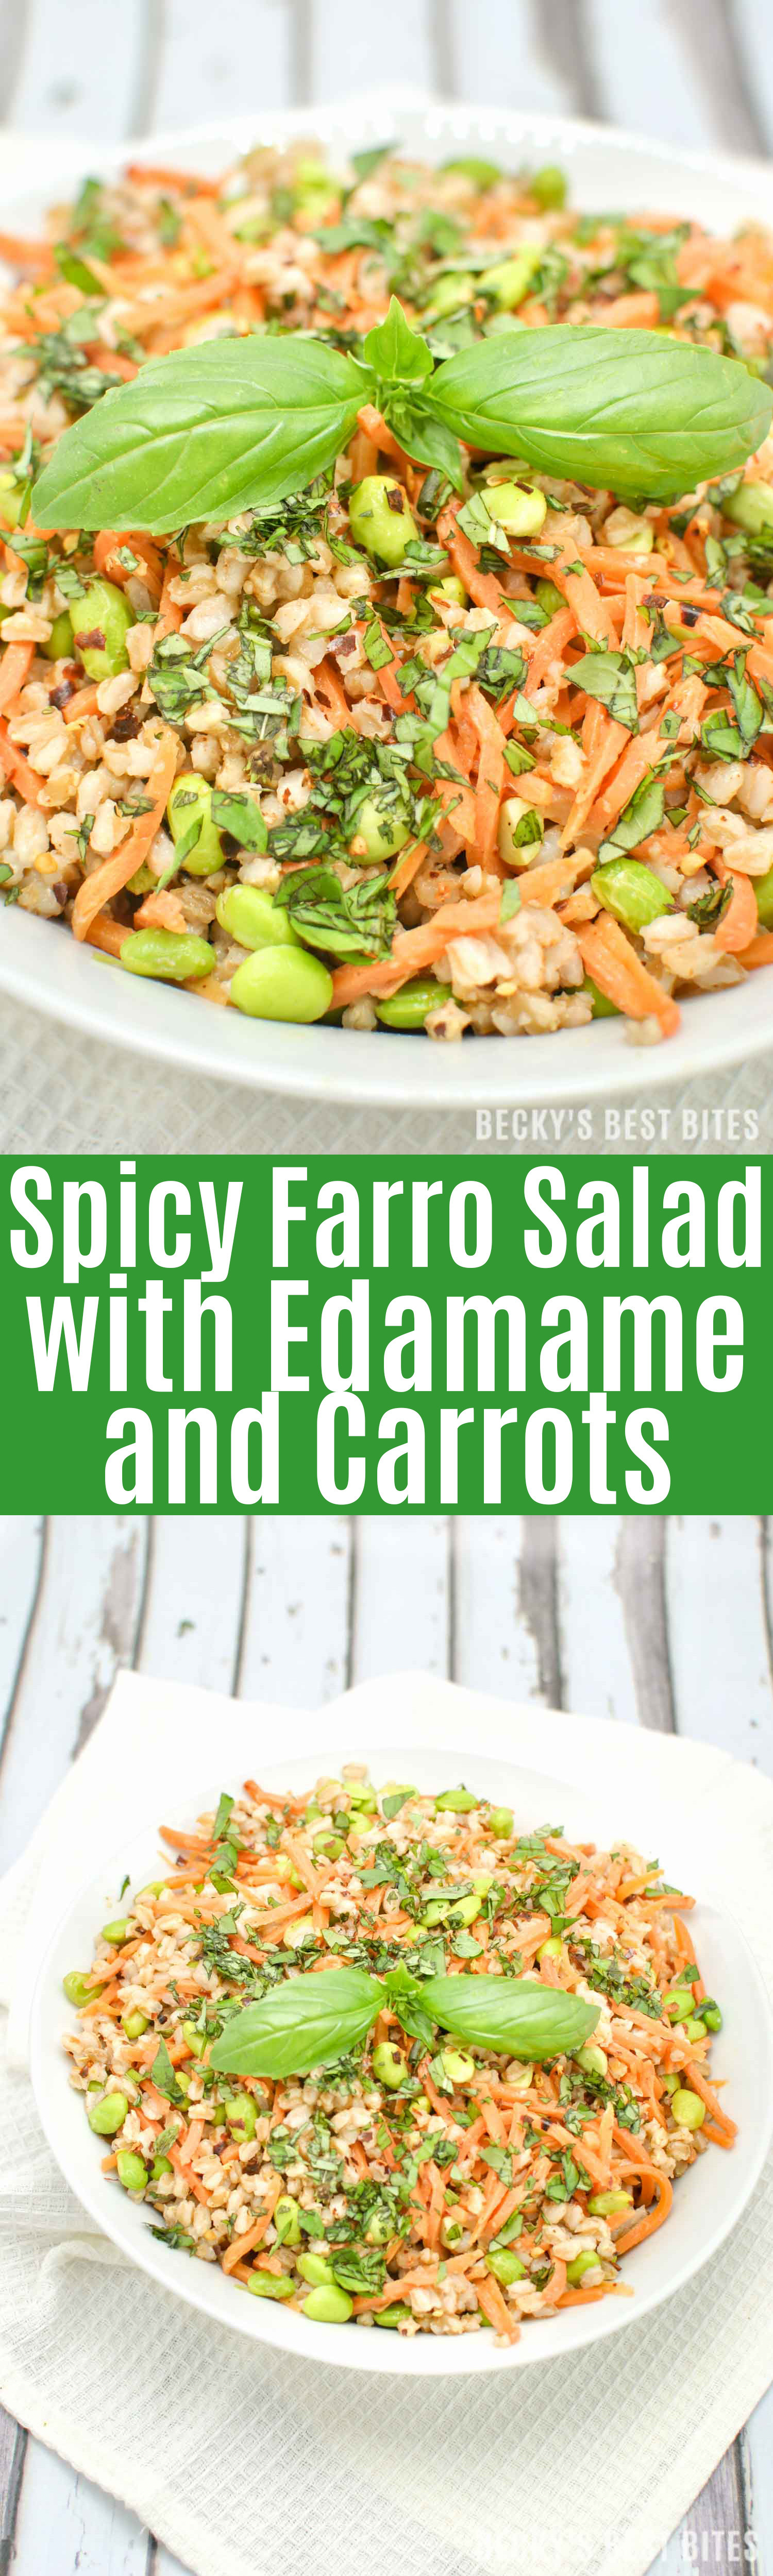 High Fiber Side Dishes  Spicy Farro Salad with Edamame and Carrots